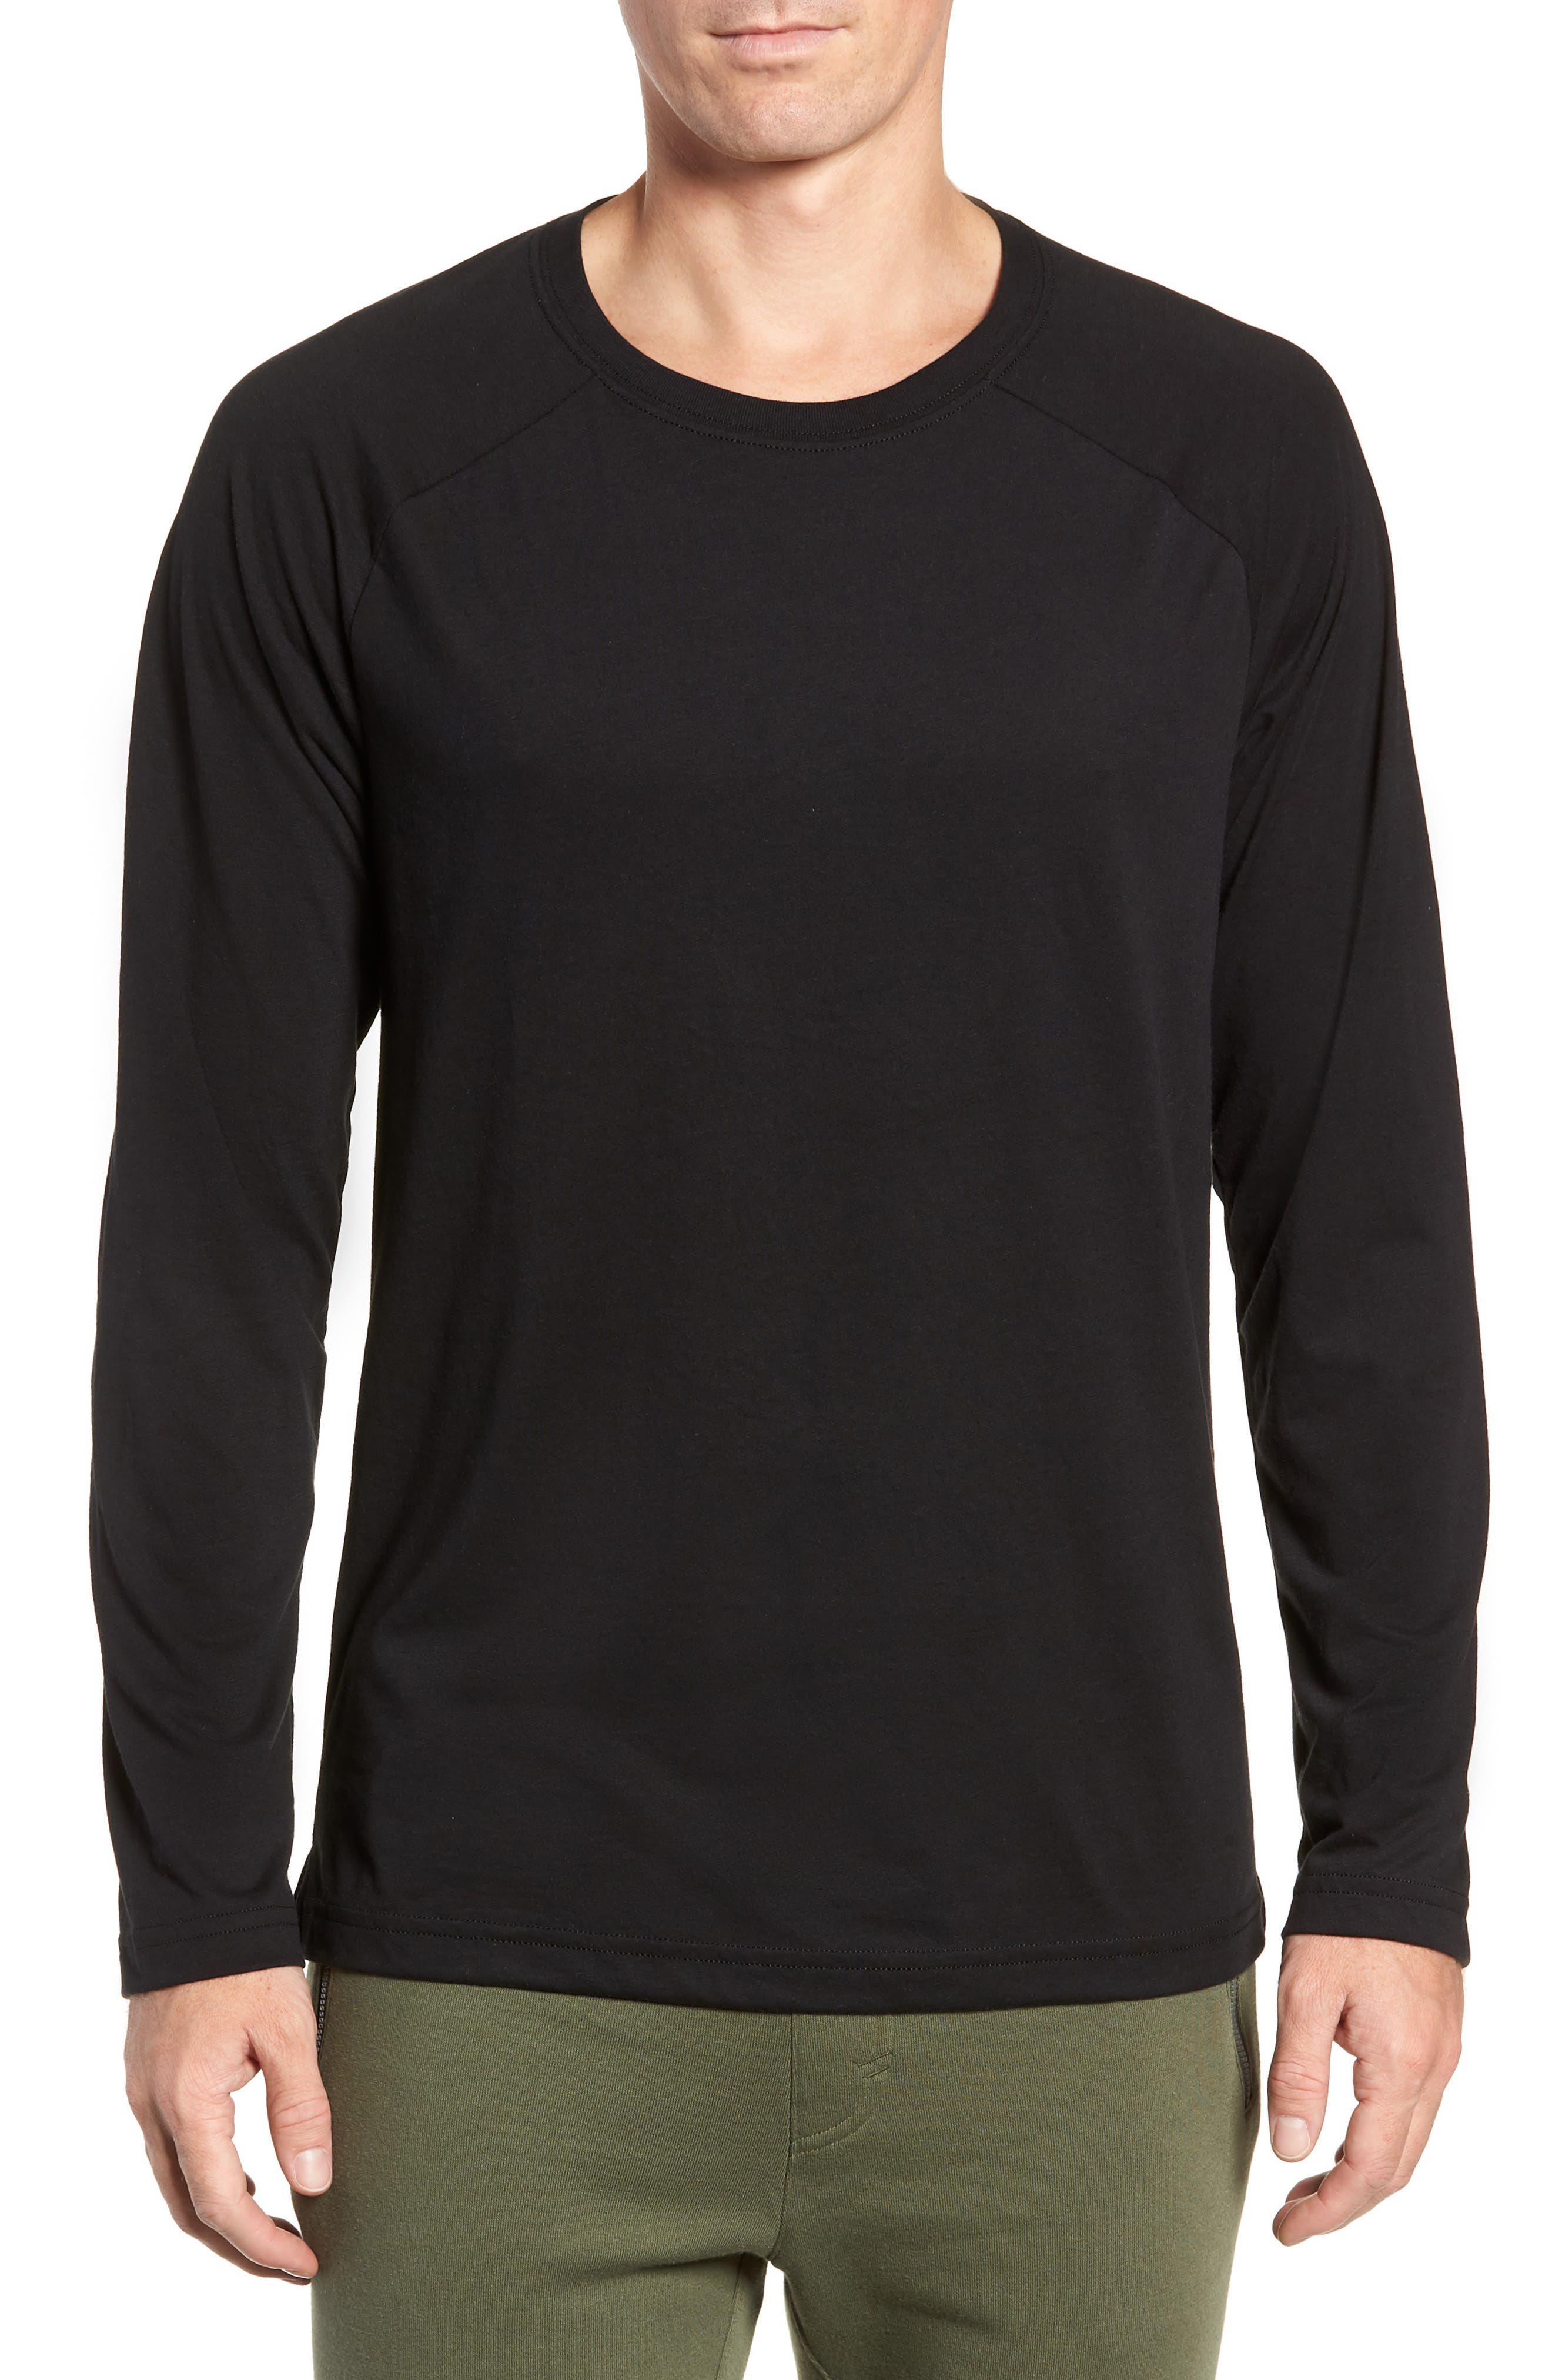 Triumph Raglan Long Sleeve T-Shirt,                             Main thumbnail 1, color,                             SOLID BLACK TRIBLEND